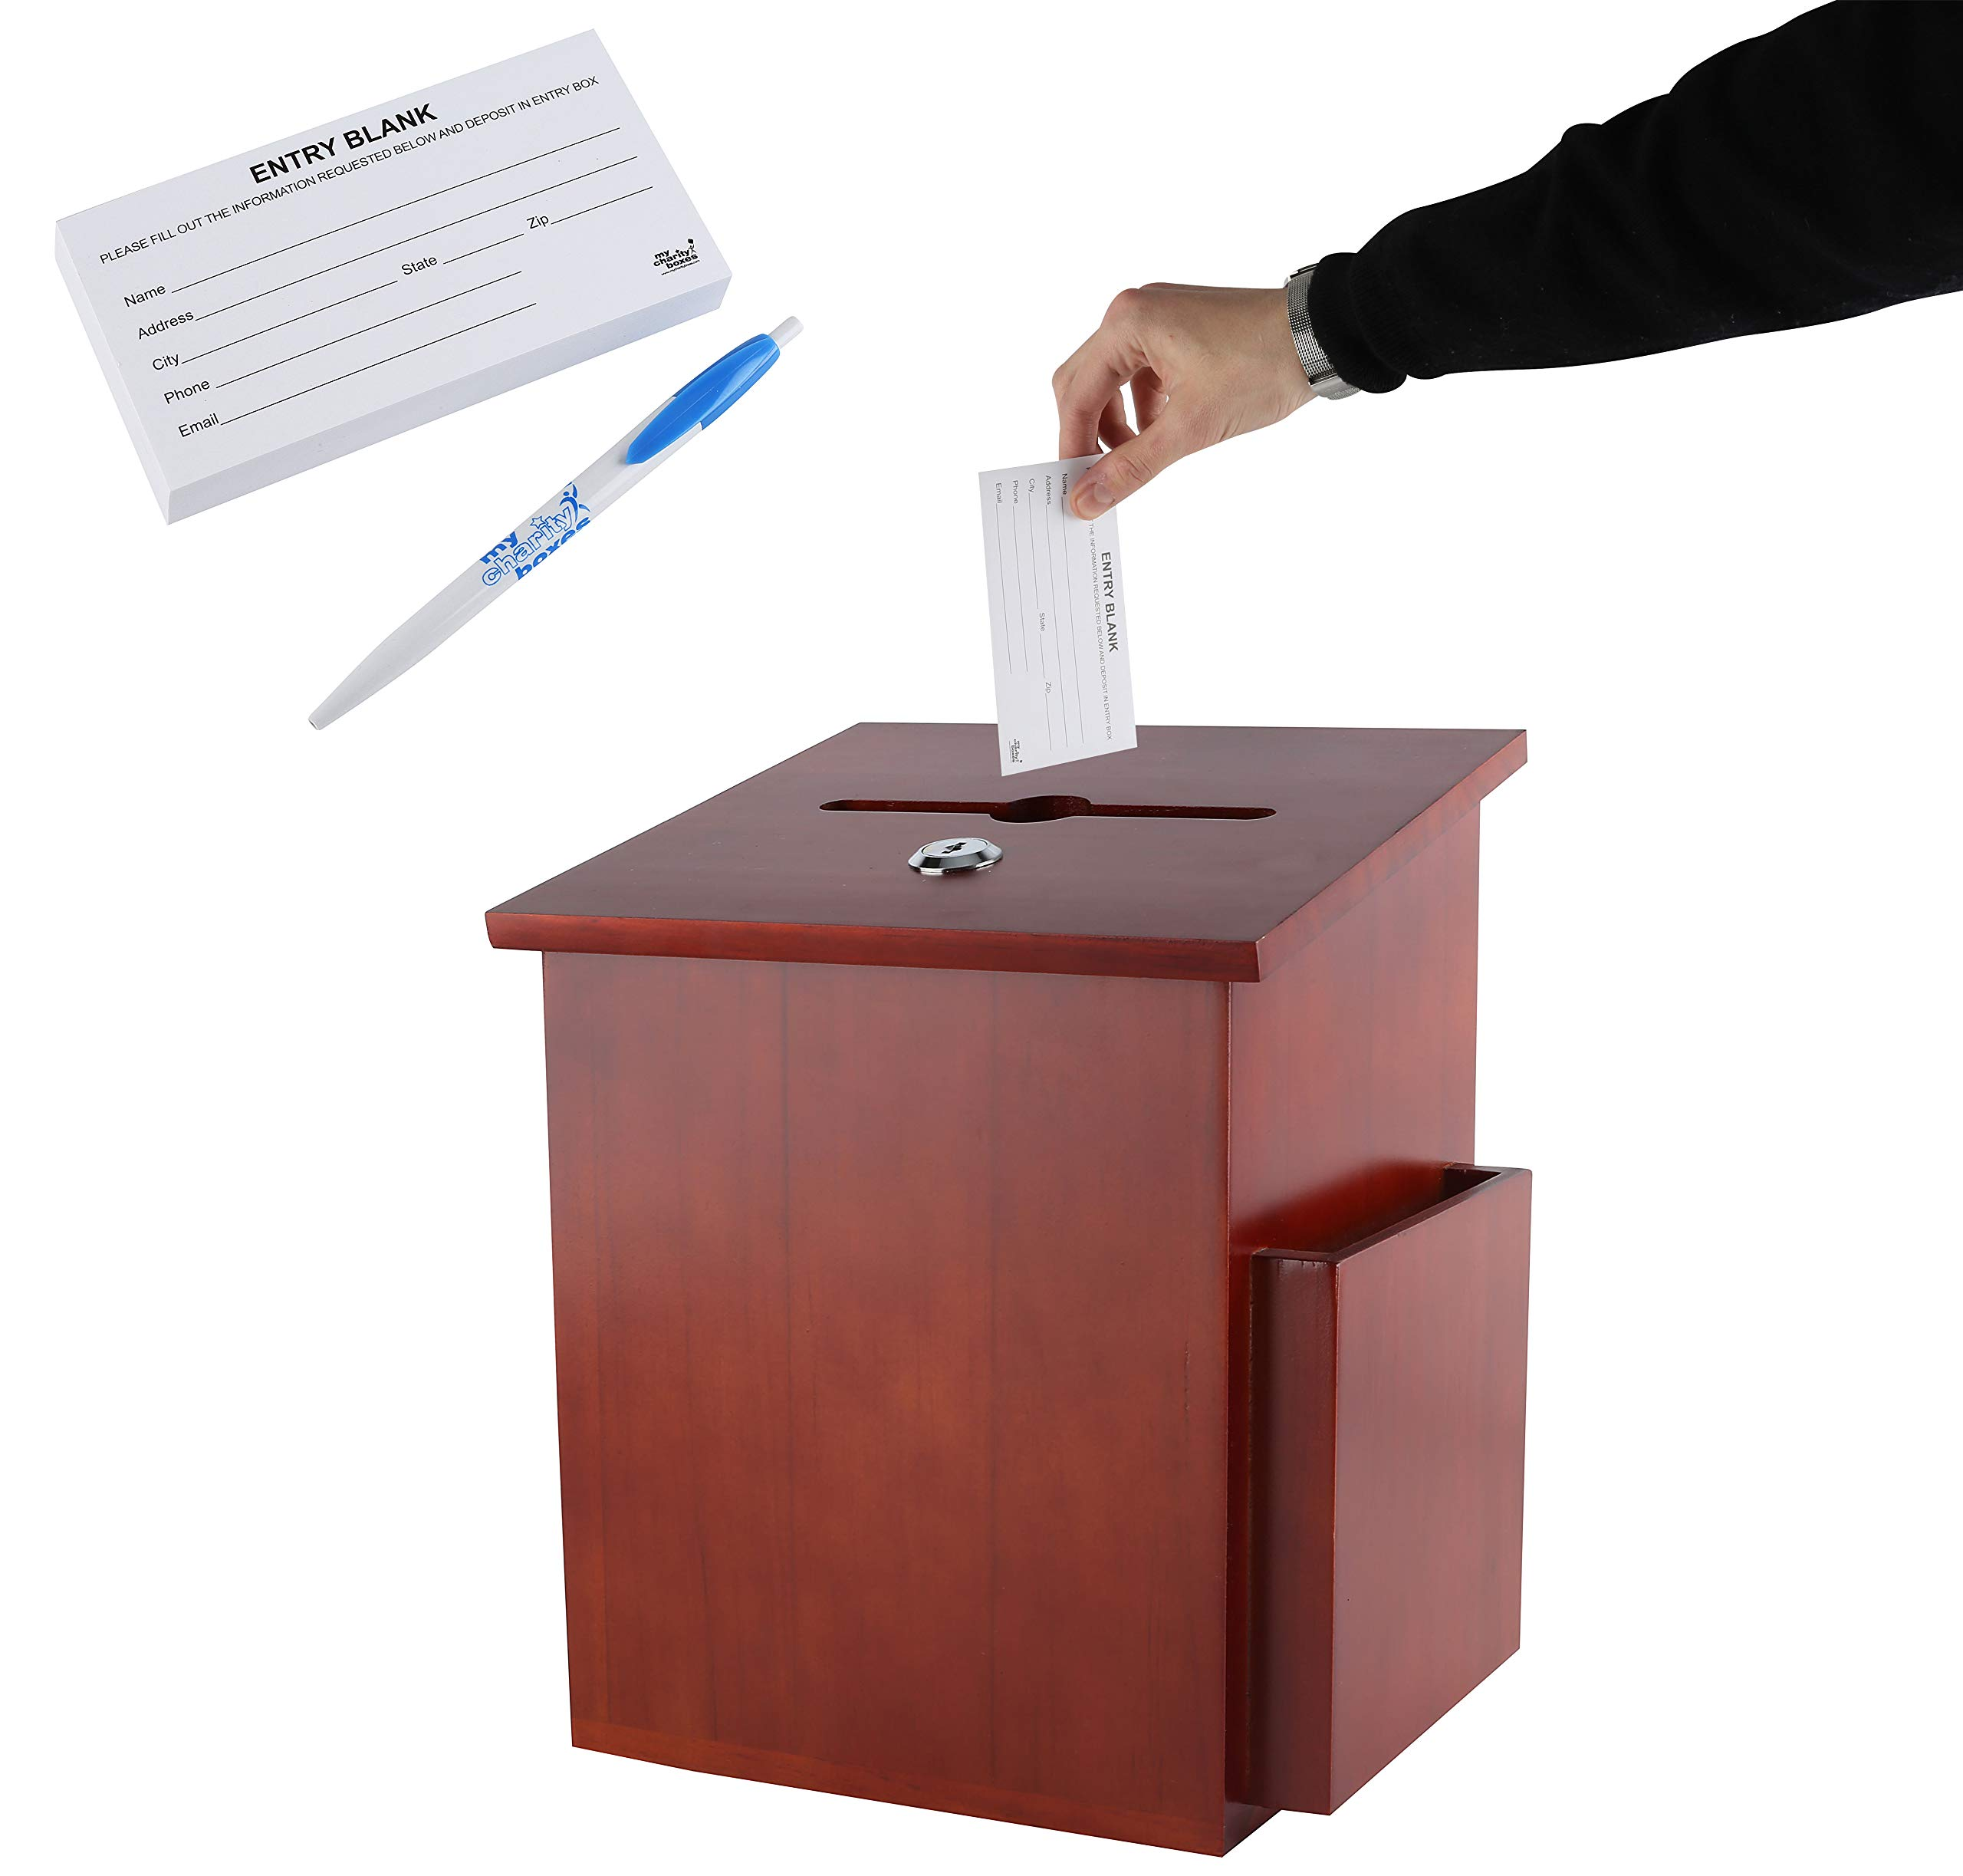 Rich Mahogany Wood Charity Donation & Suggestion Box Office Ballot Box with Pocket Comes with Locking Hinged Lid for Table Or Counter-top use (Dark Mahogany) by My Charity Boxes